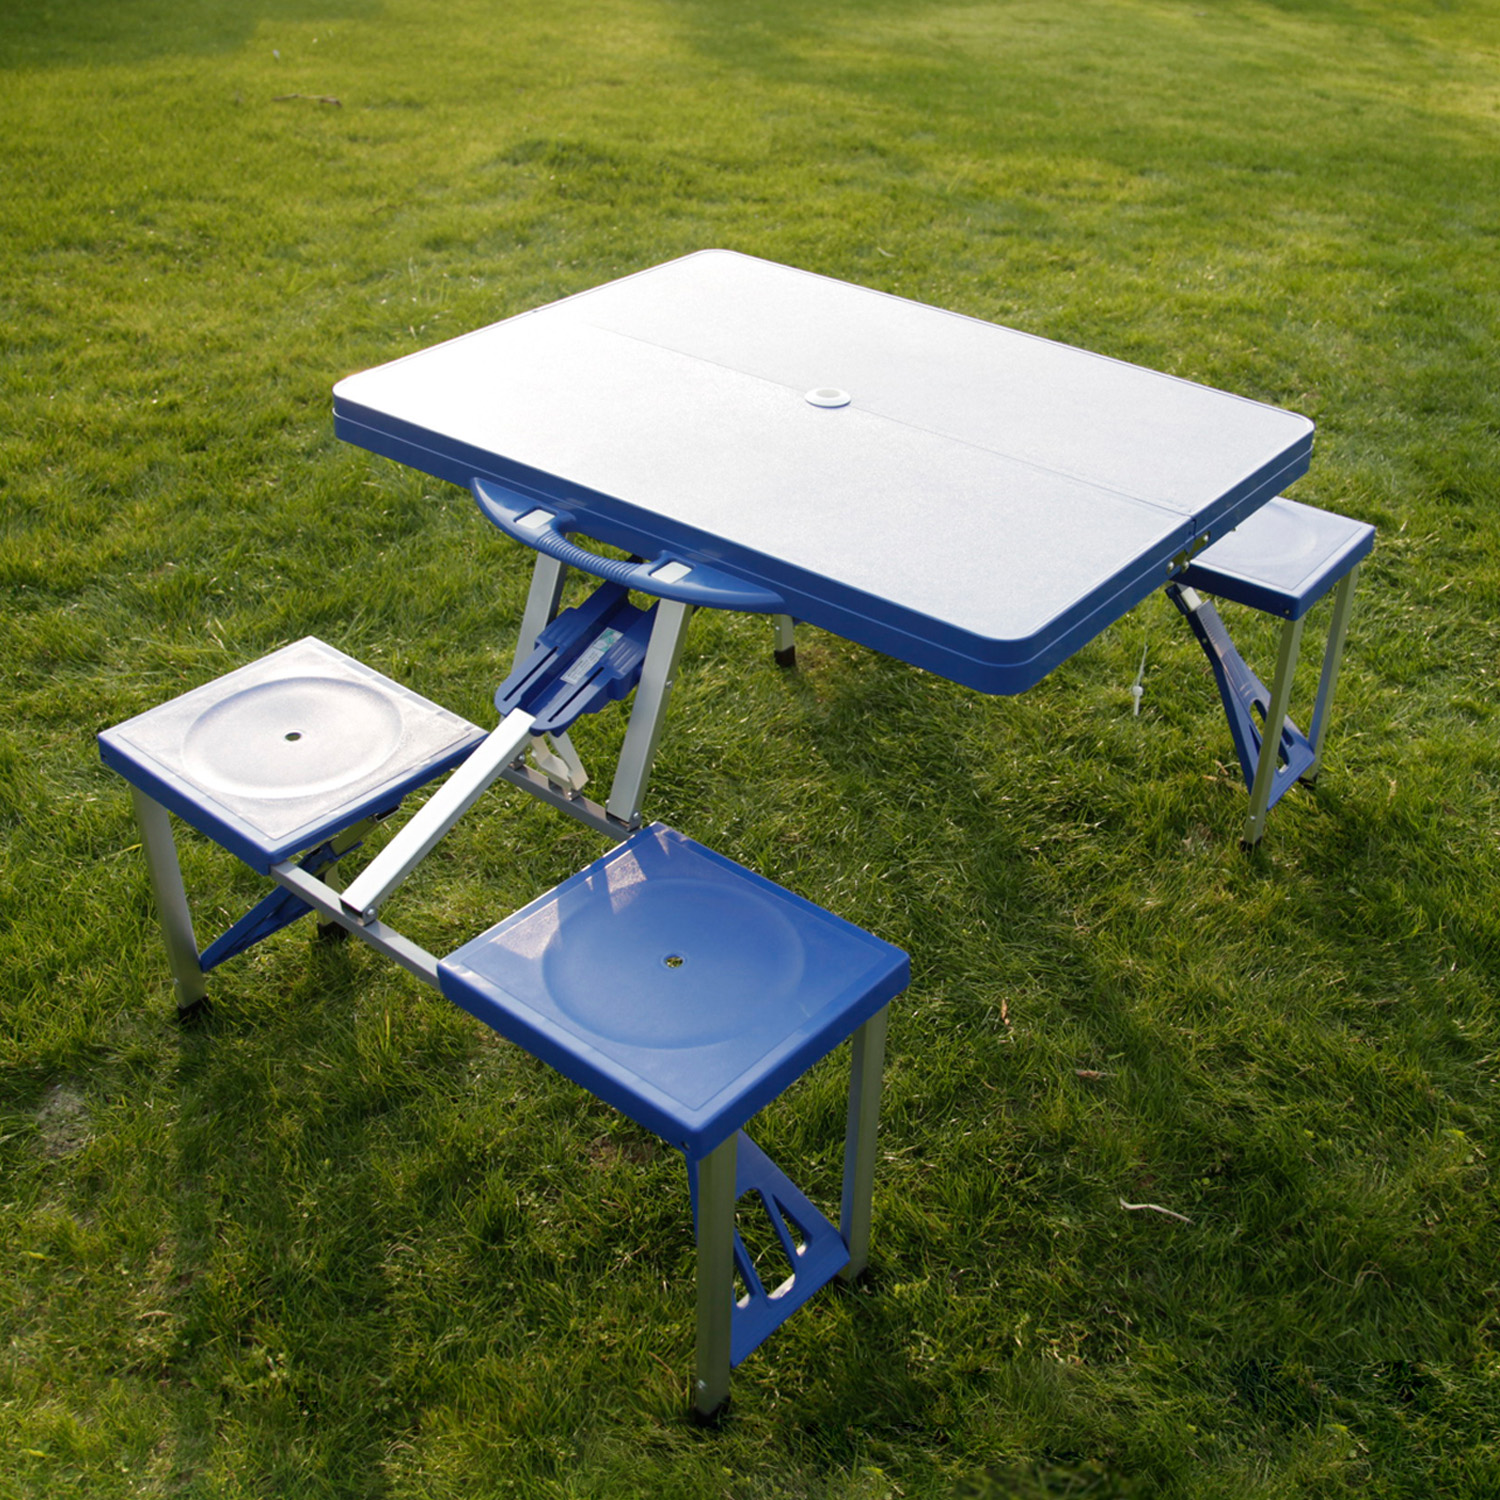 Kinbor kids portable folding plastic picnic table 4 seats blue portable folding plastic picnic table indoor outdoor kids camping table 4 seats watchthetrailerfo